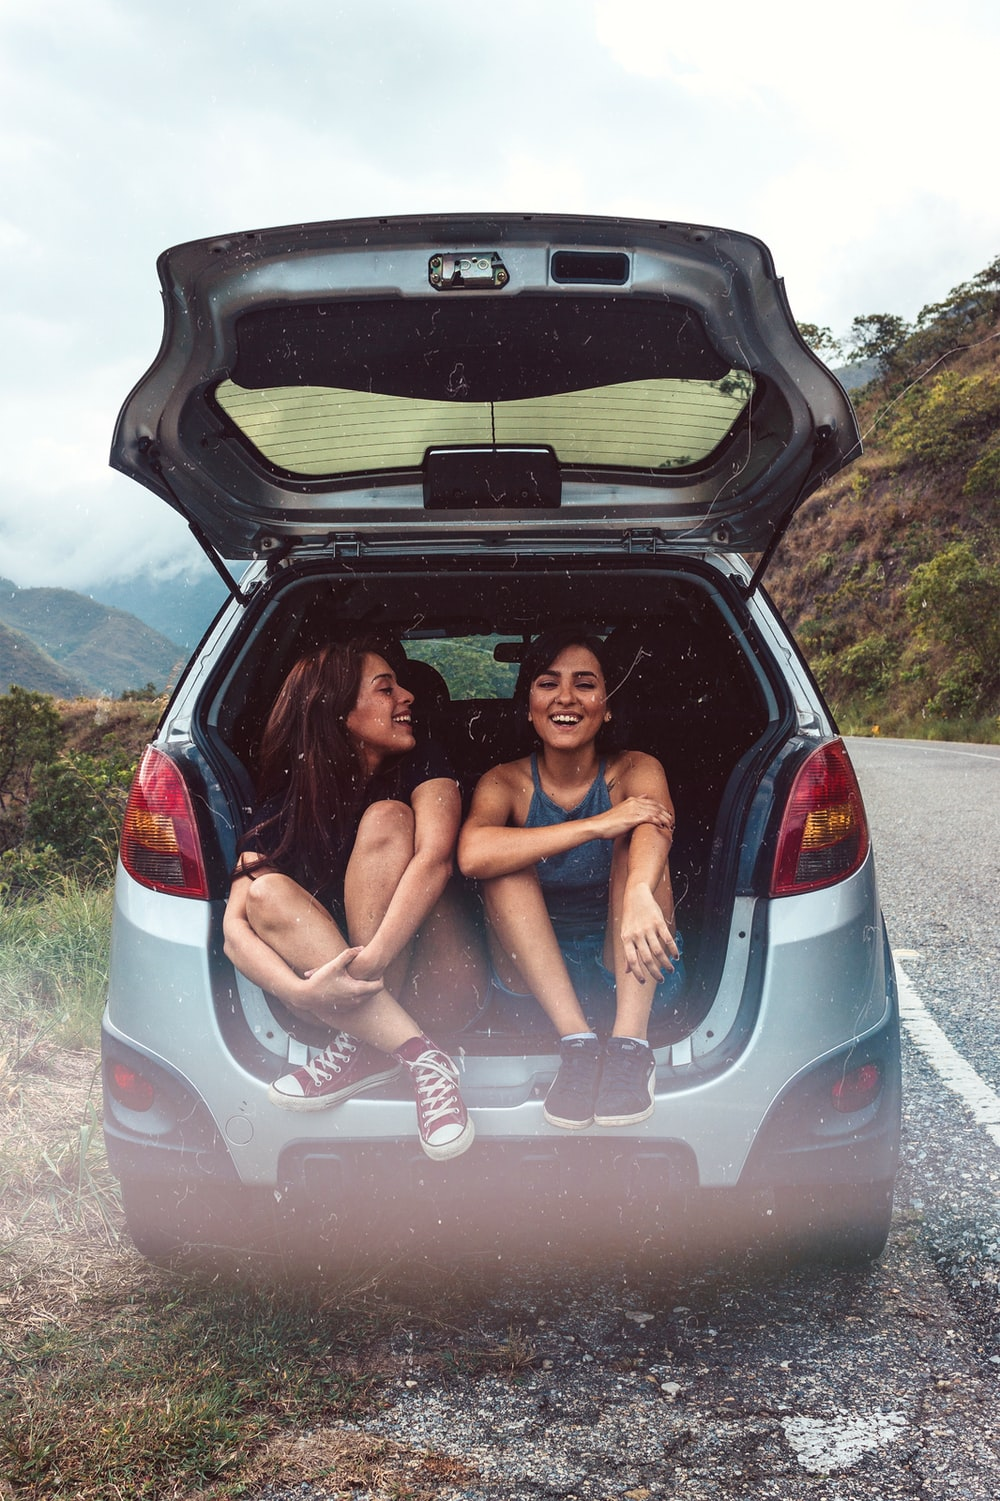 two women in hatchback compartment